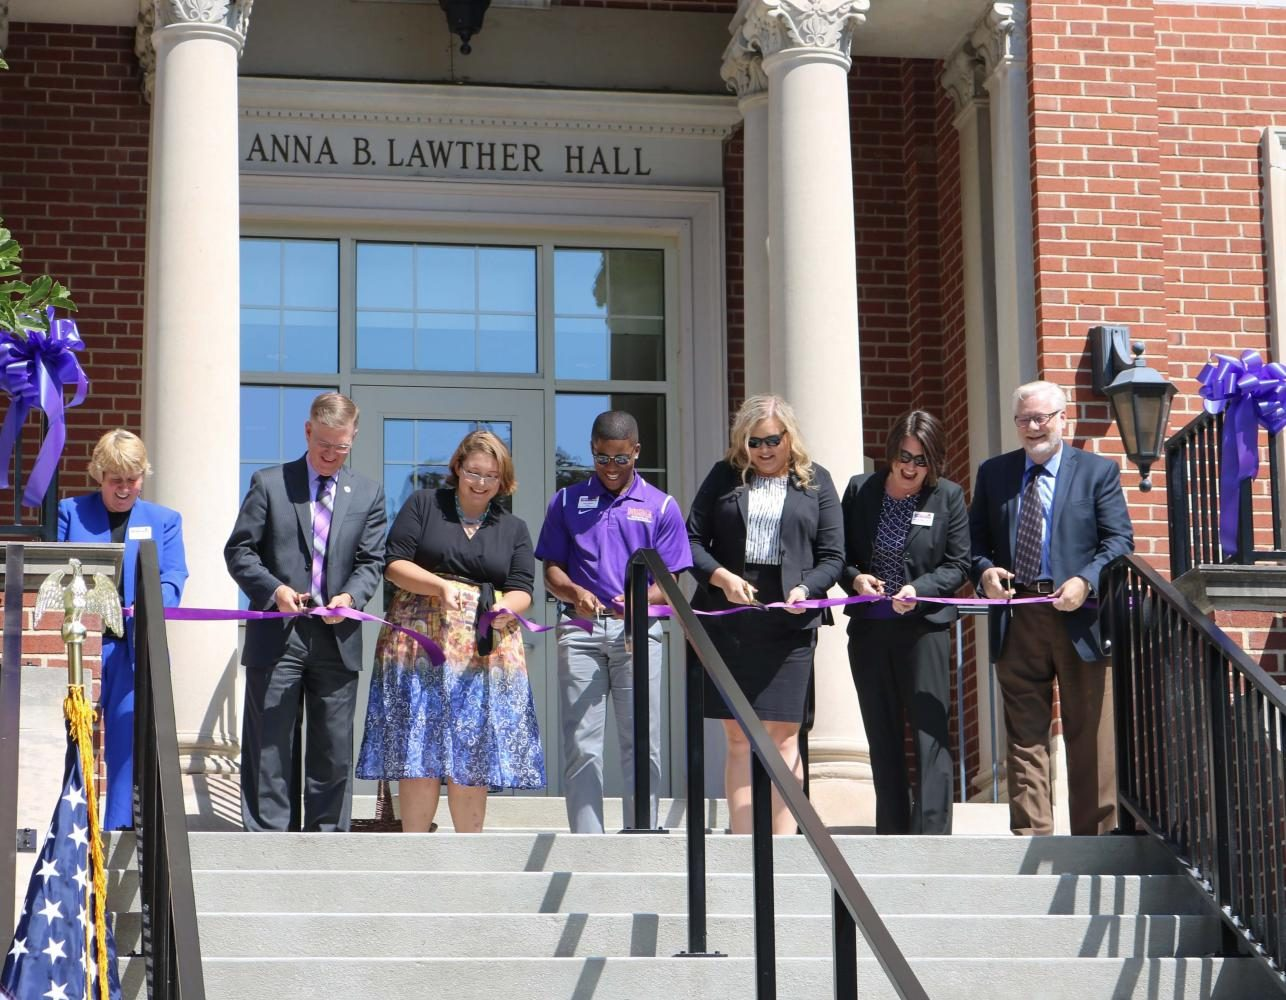 PANTHER PORTRAIT: Rededication Ceremony, Lawther Hall